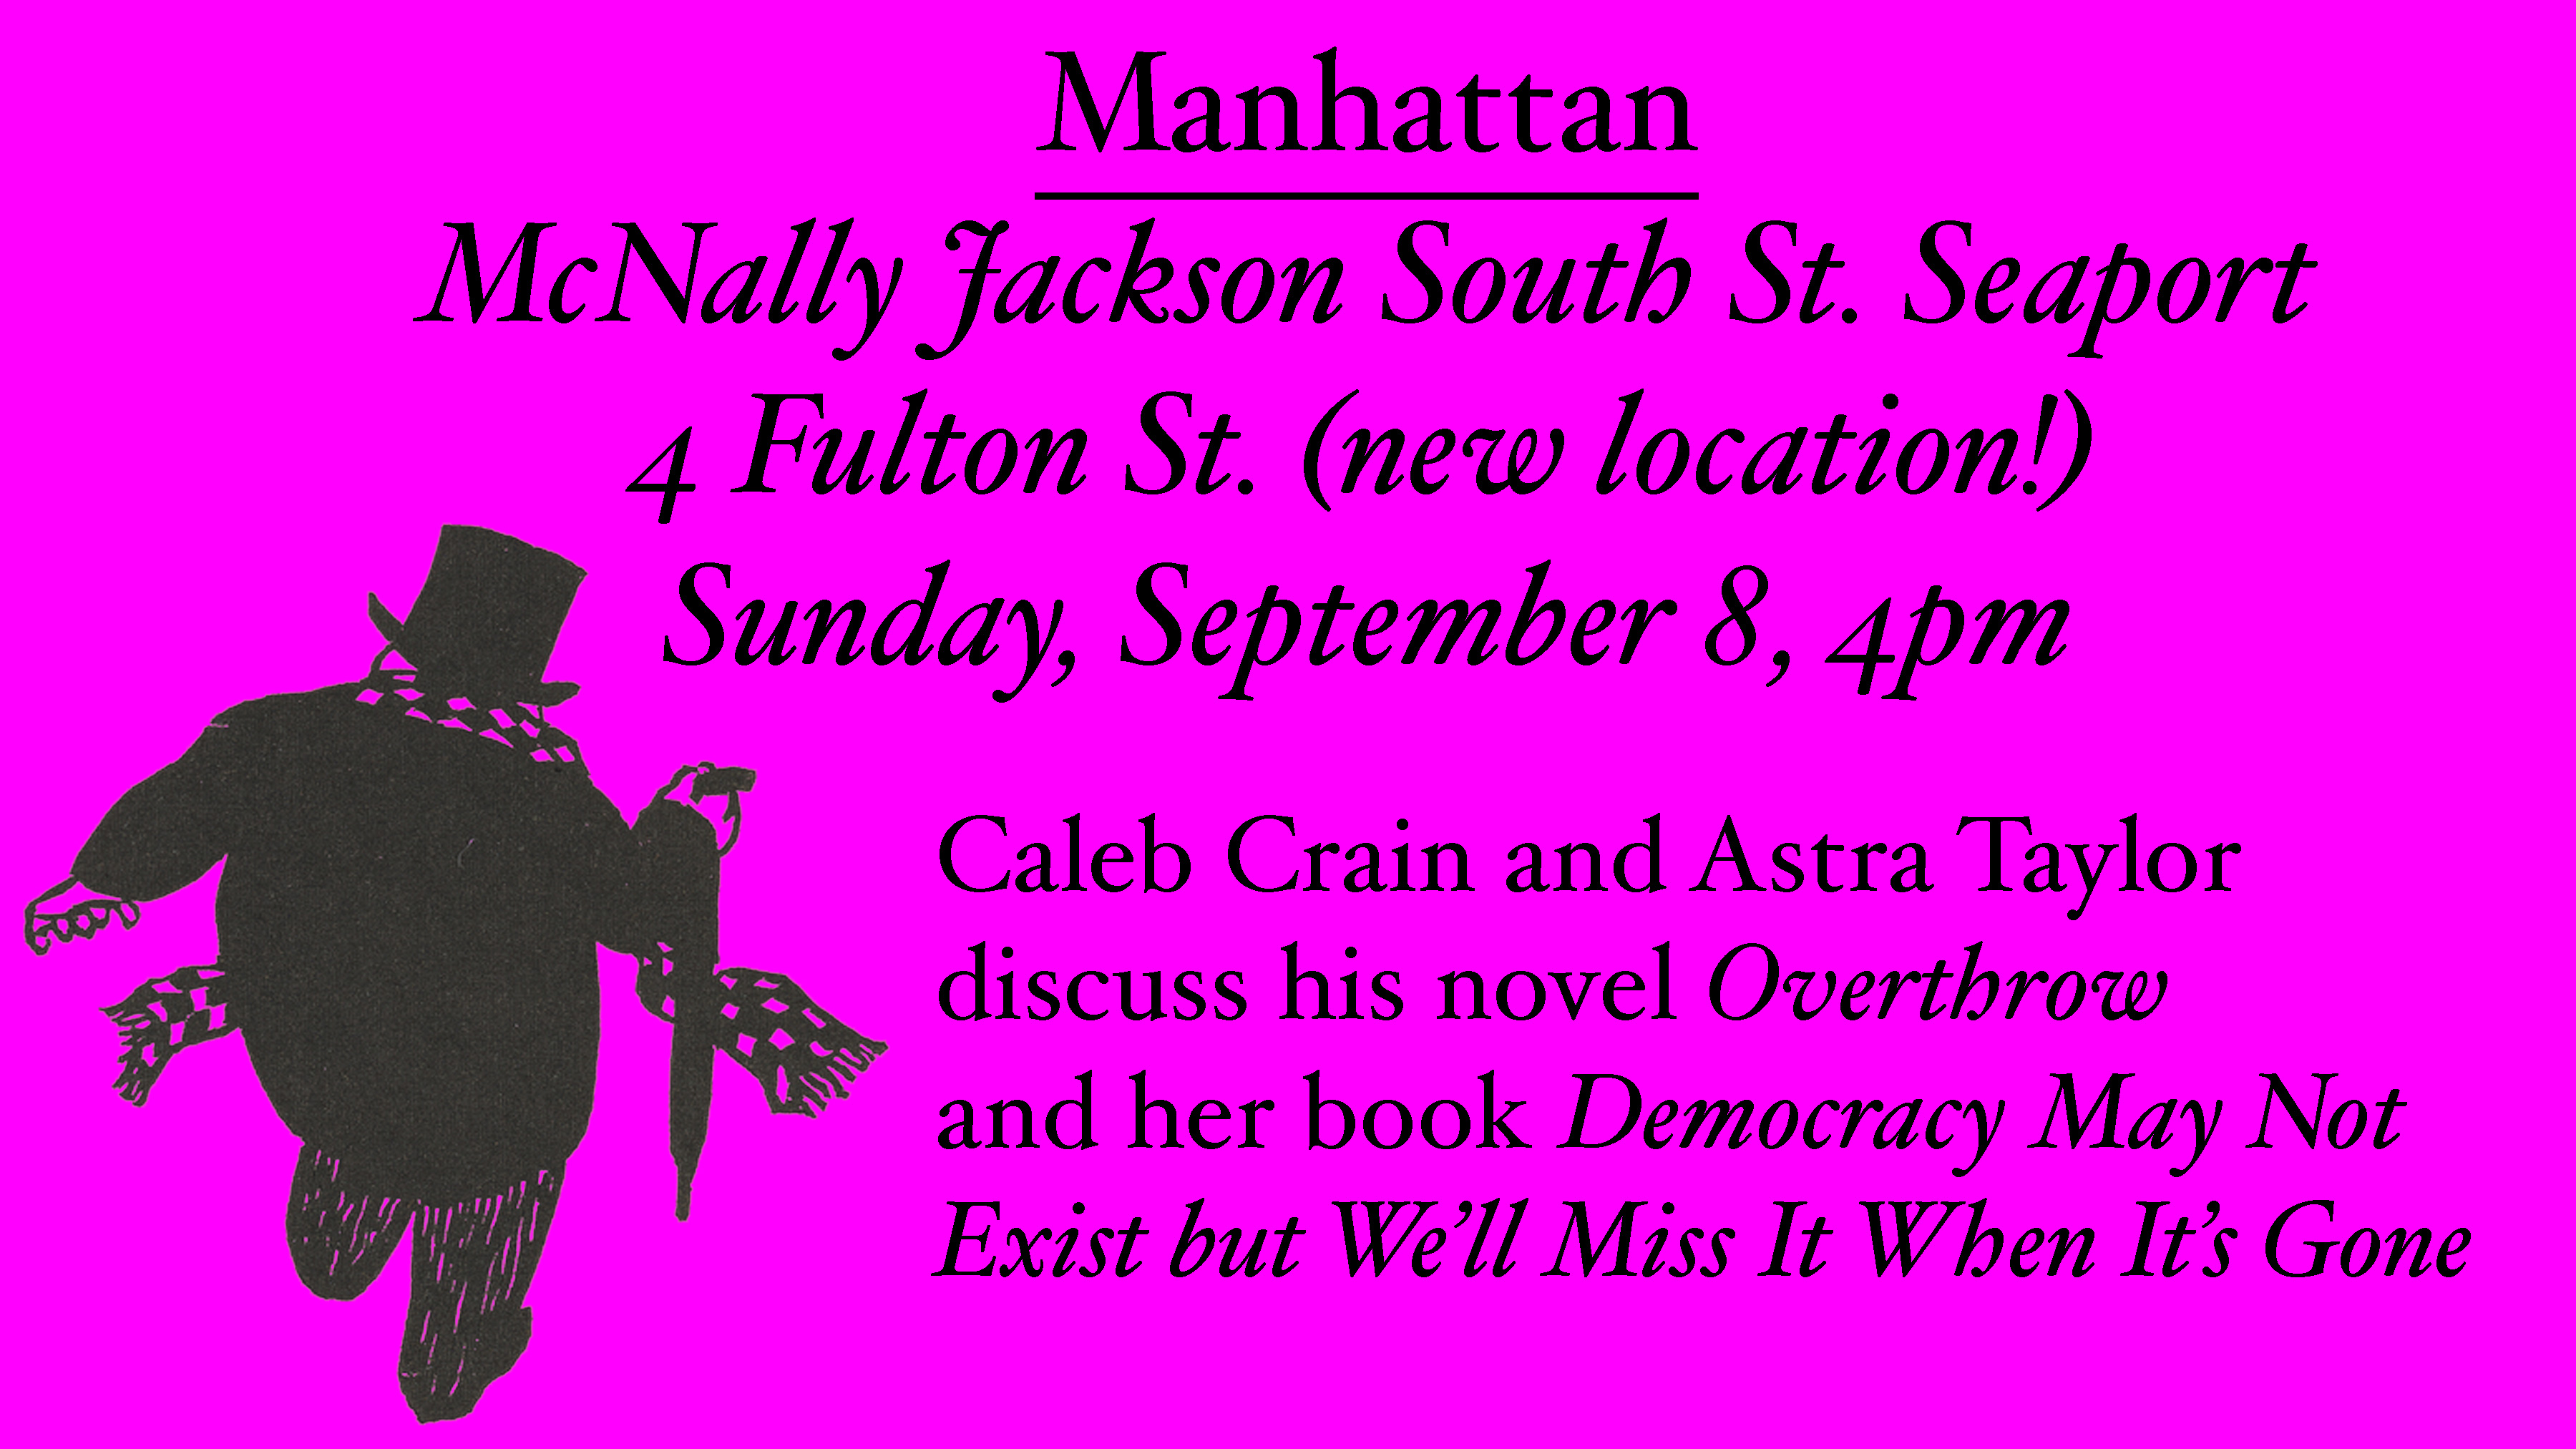 Manhattan: McNally Jackson South St. Seaport, 4 Fulton St. (new location!). Sunday, September 8, 4pm. Caleb Crain and Astra Taylor discuss his novel Overthrow and her book Democracy May Not Exist but We'll Miss It When It's Gone